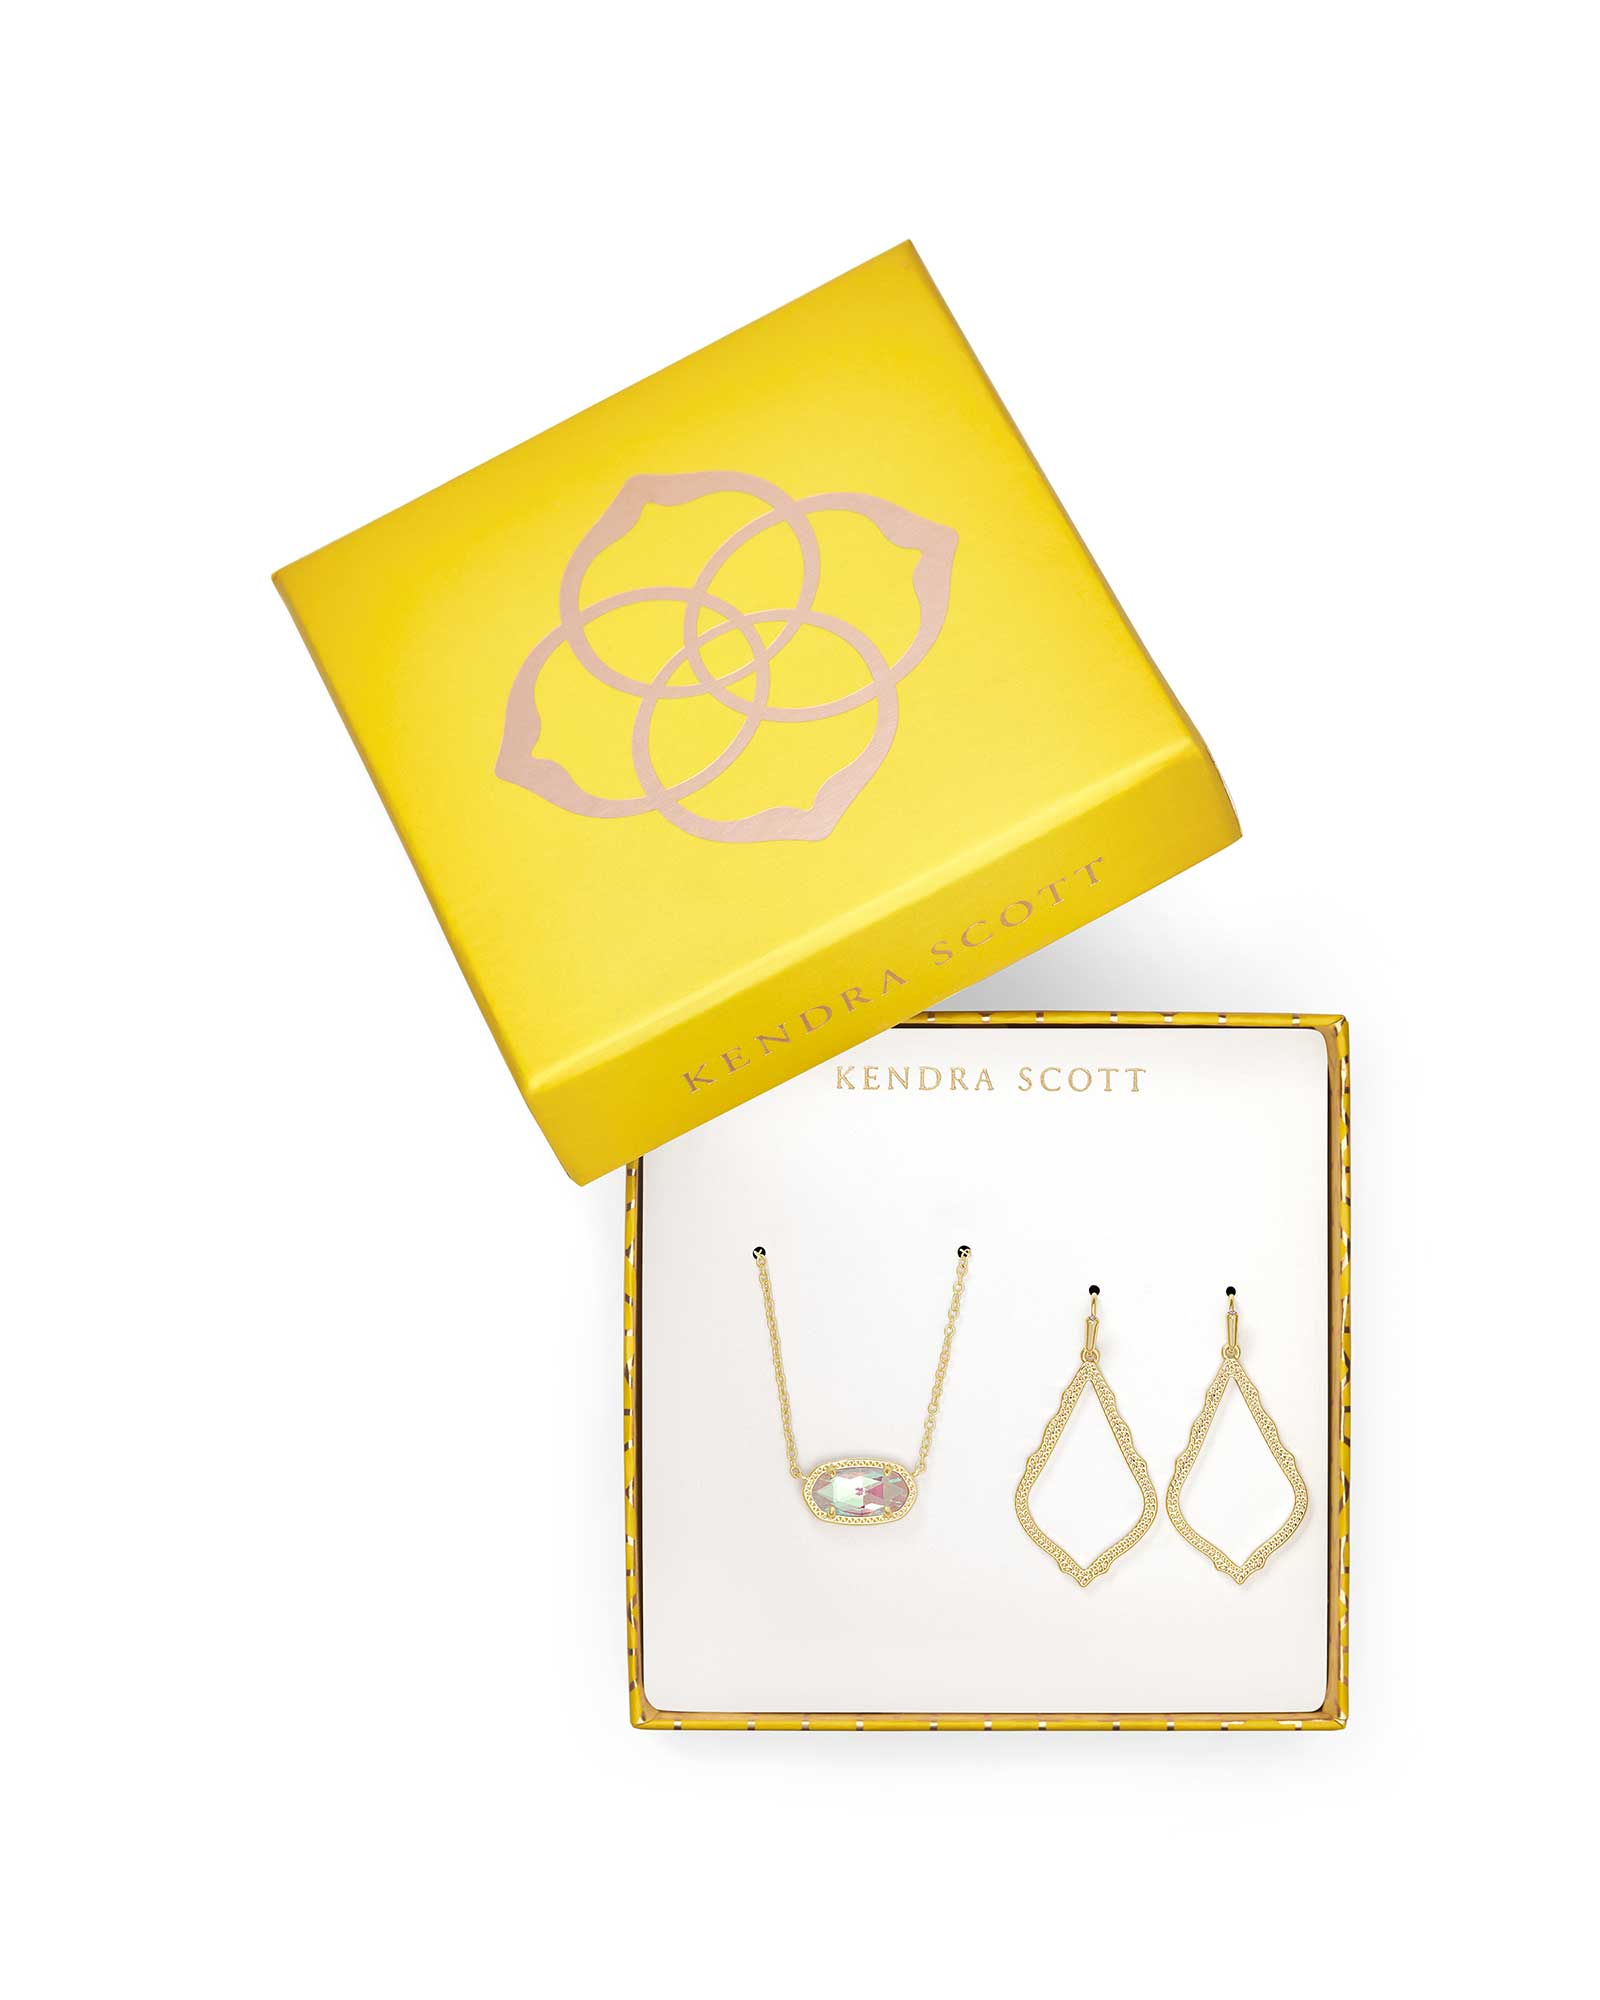 gold necklace and earrings in yellow box